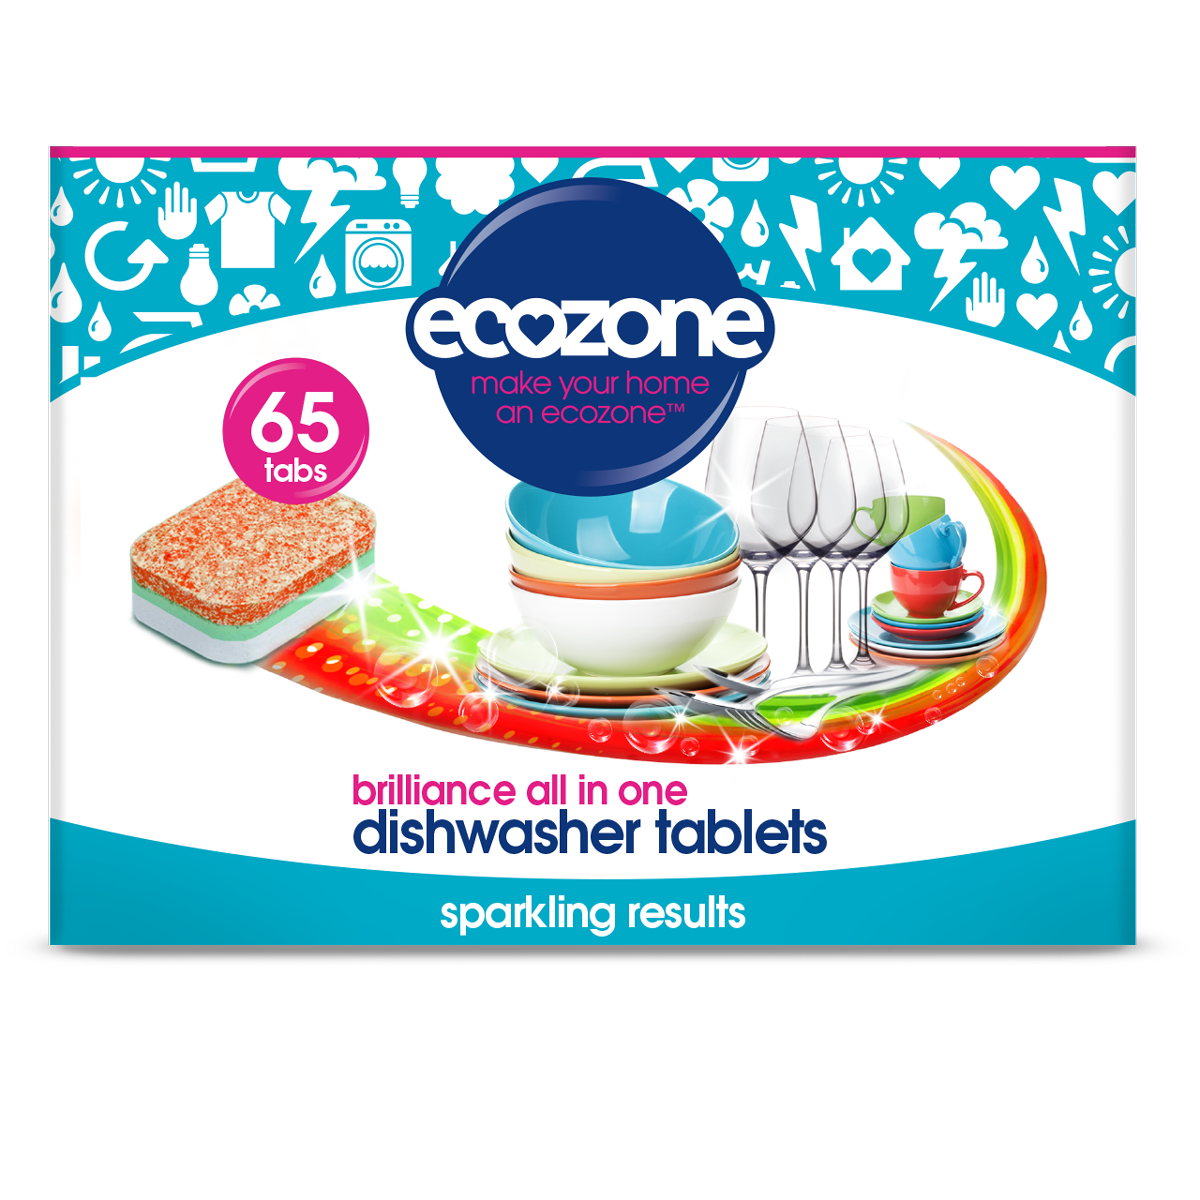 Ecozone Dishwasher Tablets Brilliance - 65 tabs